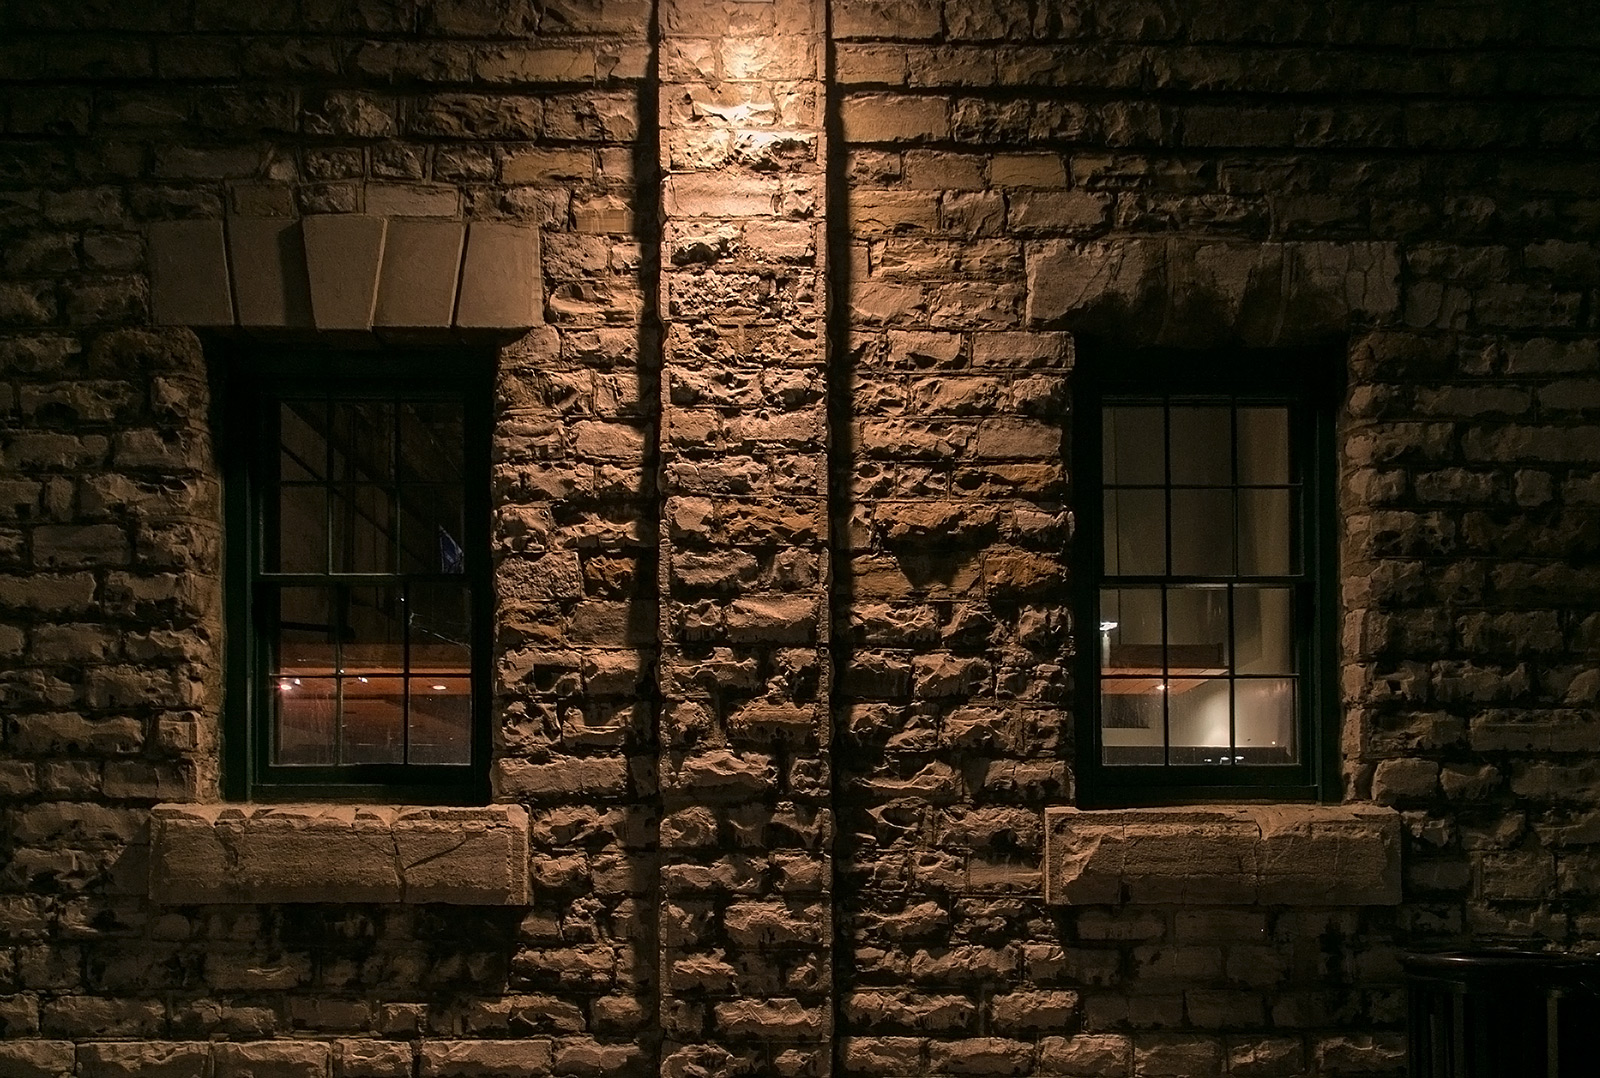 20140118. Two windows in a 154-year-old stone wall. Minimal Aesthetic #22.